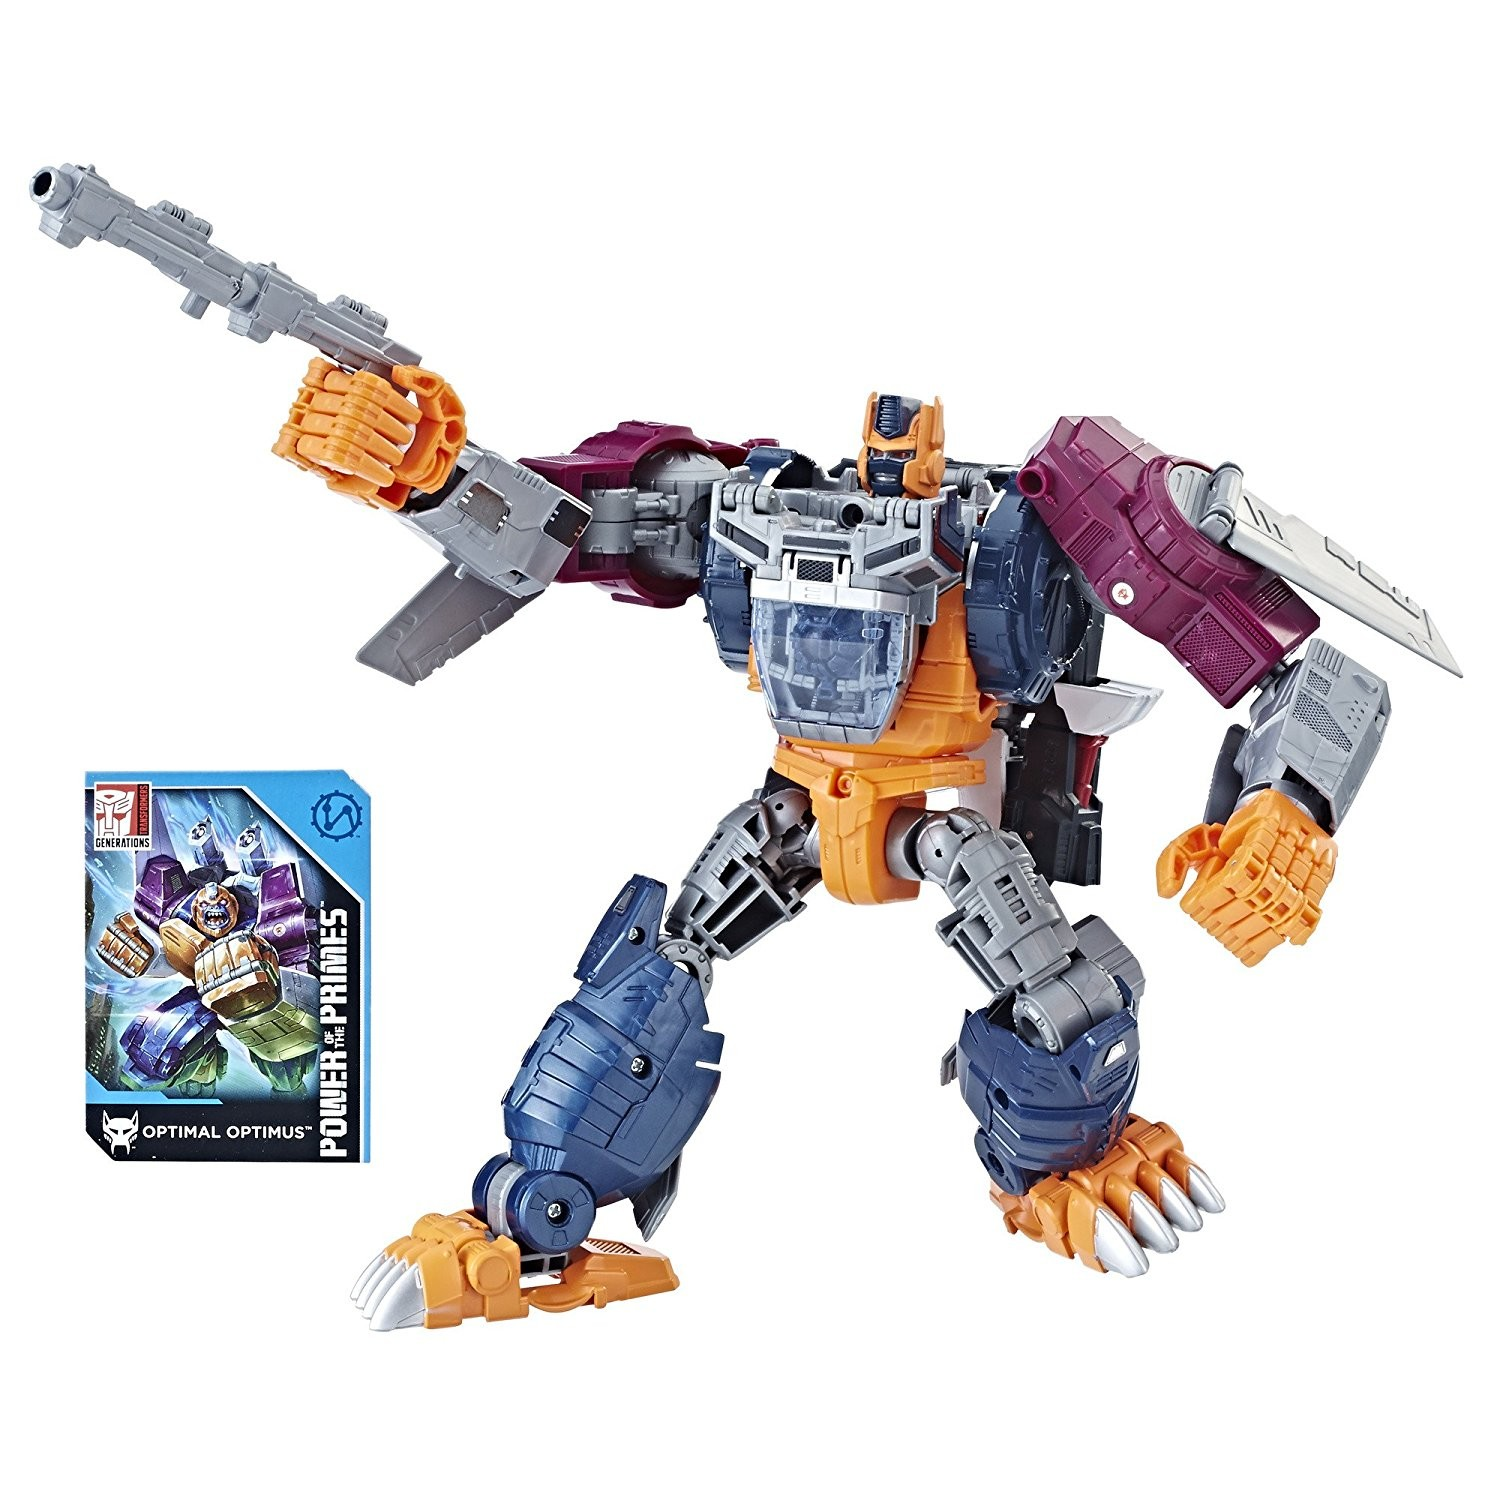 Transformers News: Re: Transformers Power of the Primes Optimal Optimus Back in Stock at Hasbro Toy Shop